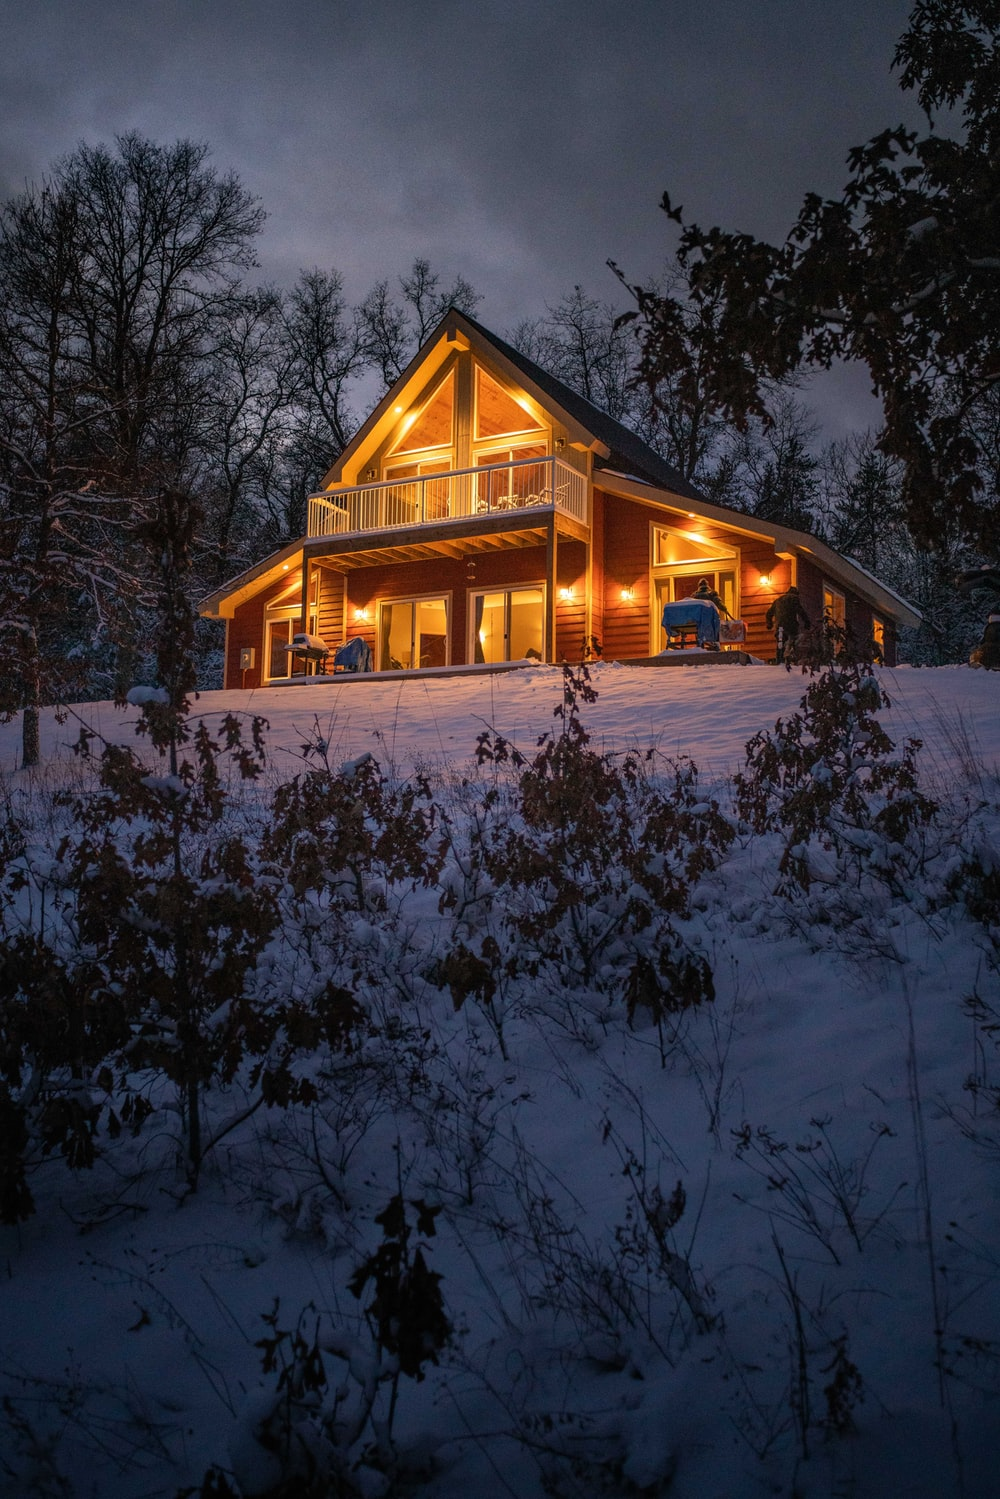 brown wooden house surrounded by trees covered with snow during night time